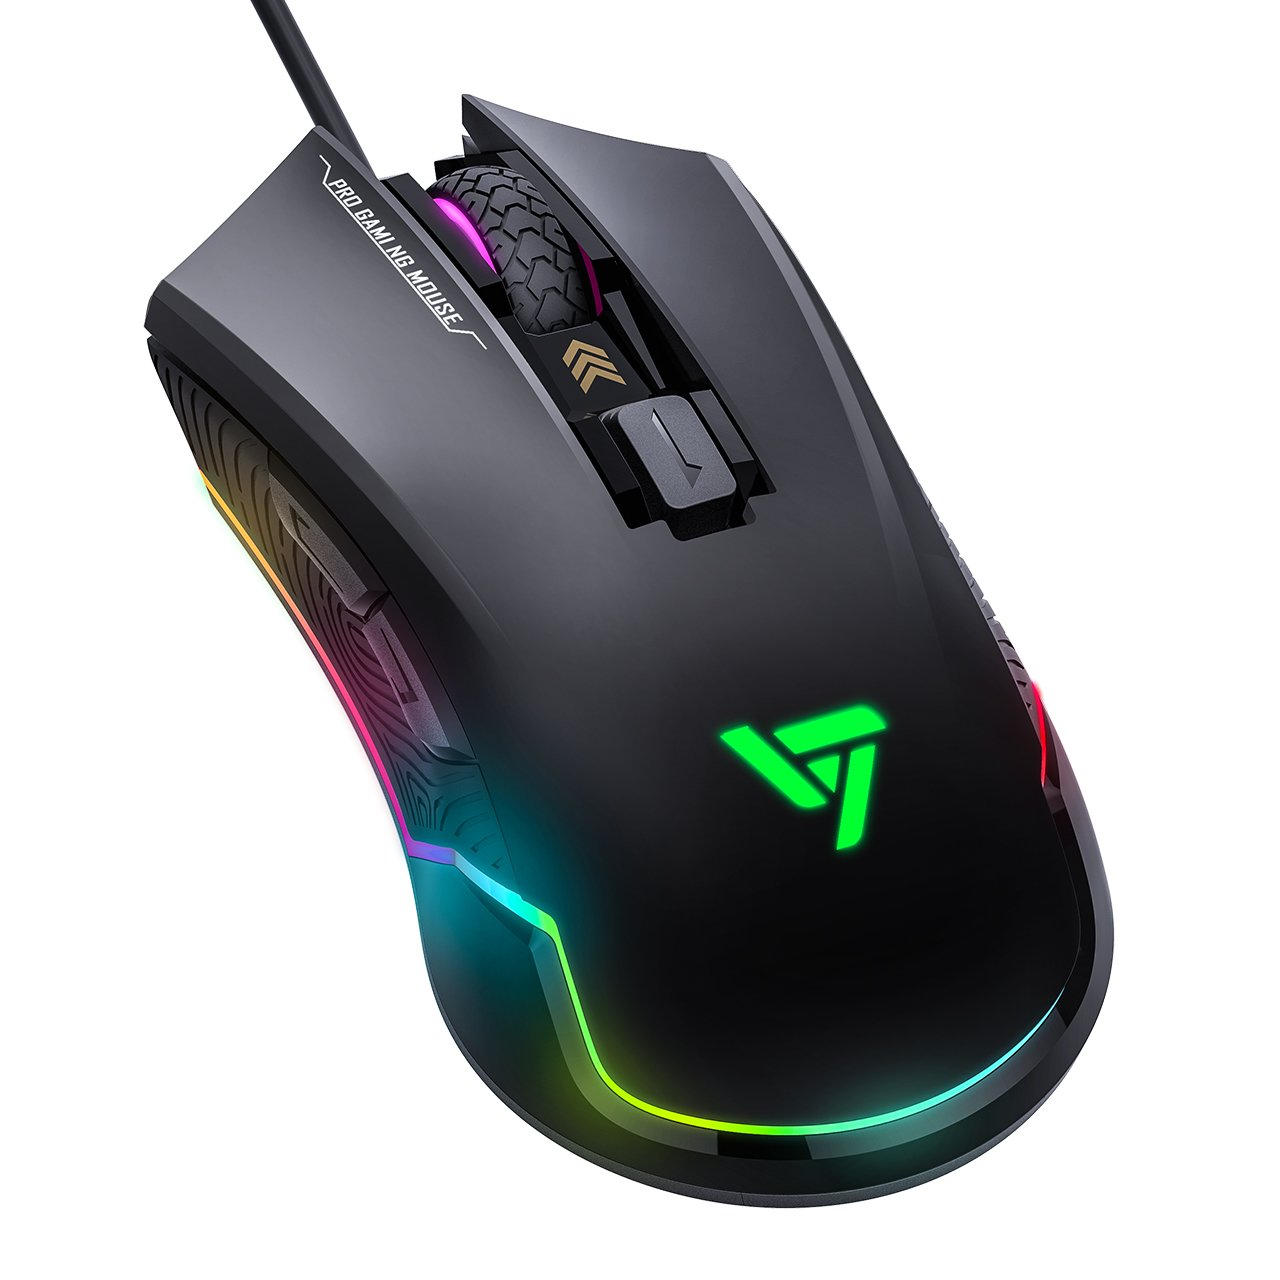 VicTsing Pro RGB Gaming Mouse Wired with 16 8 Million Chroma RGB